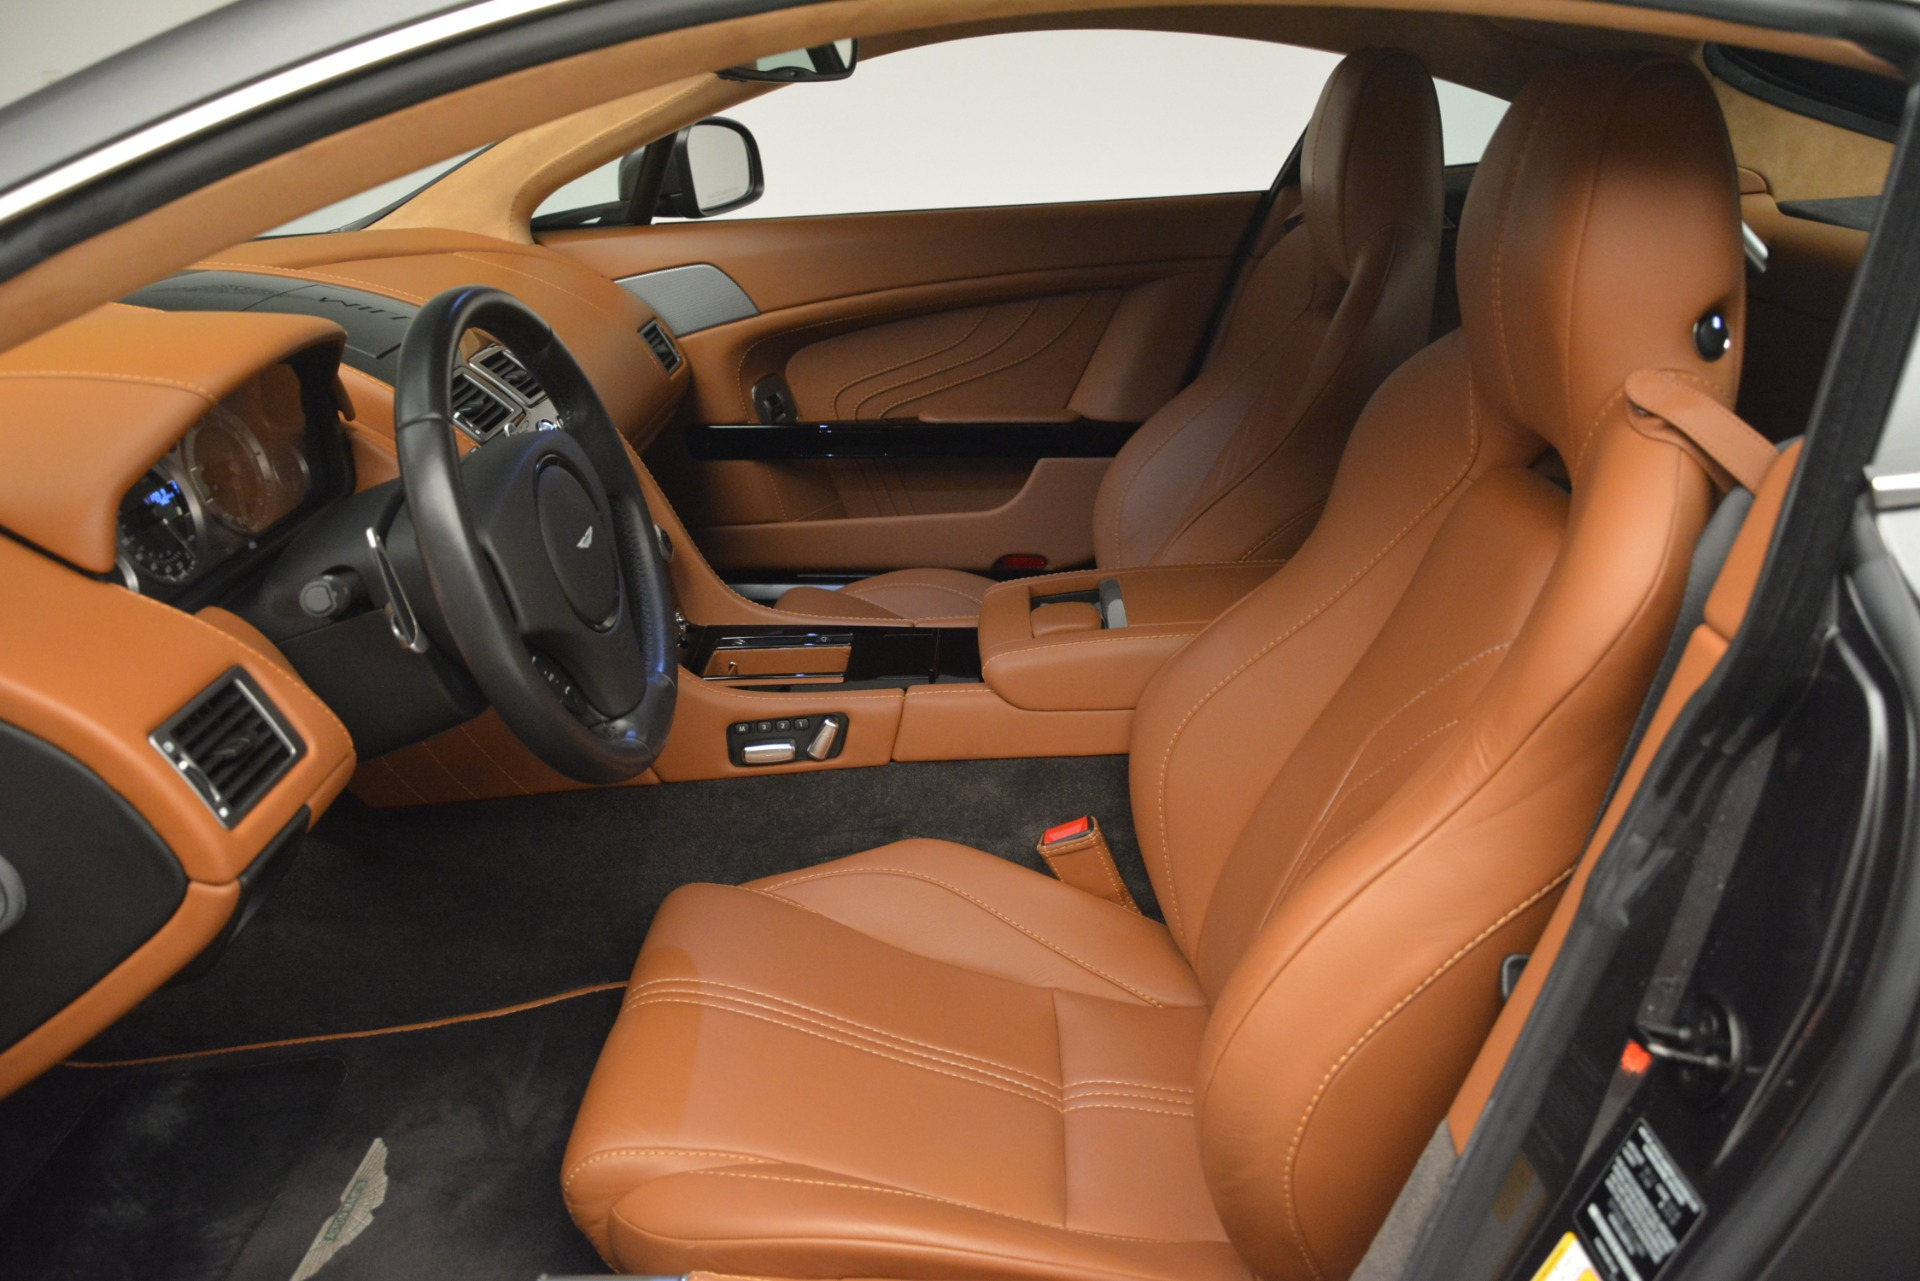 Used 2012 Aston Martin V8 Vantage S Coupe For Sale In Westport, CT 2951_p13